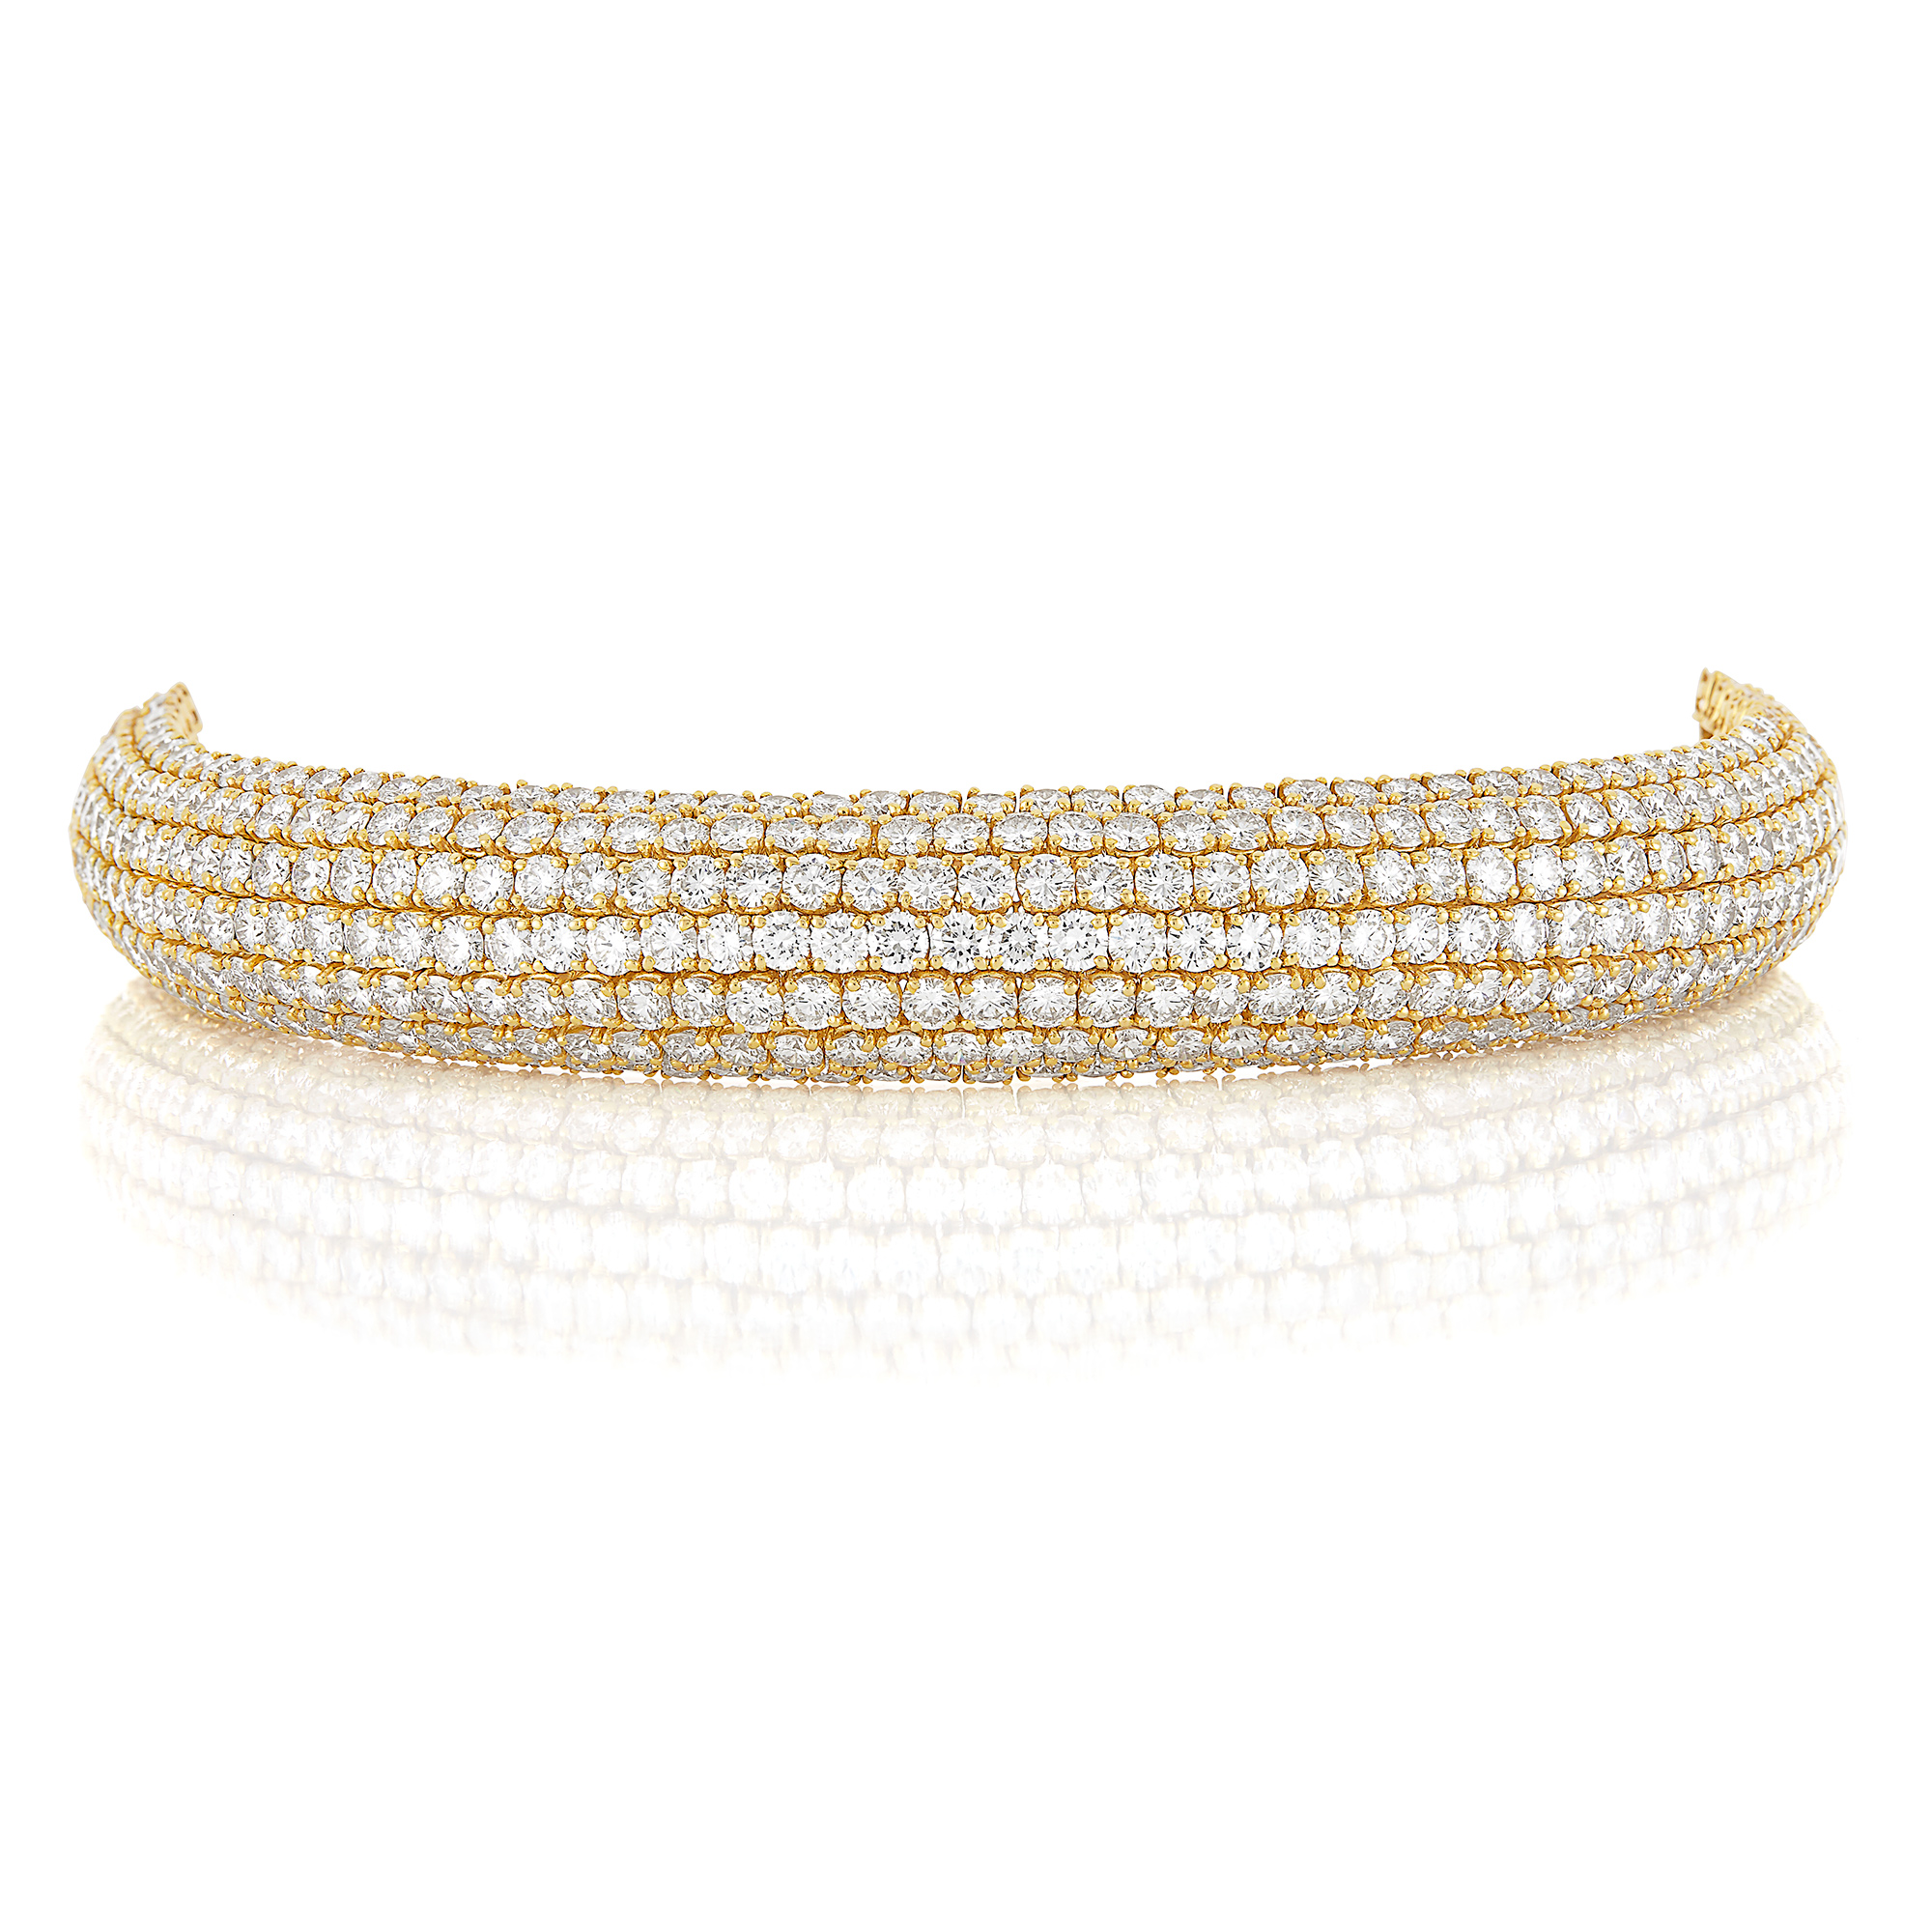 Lot image - Gold and Diamond Bombé Bracelet, Boucheron, Paris